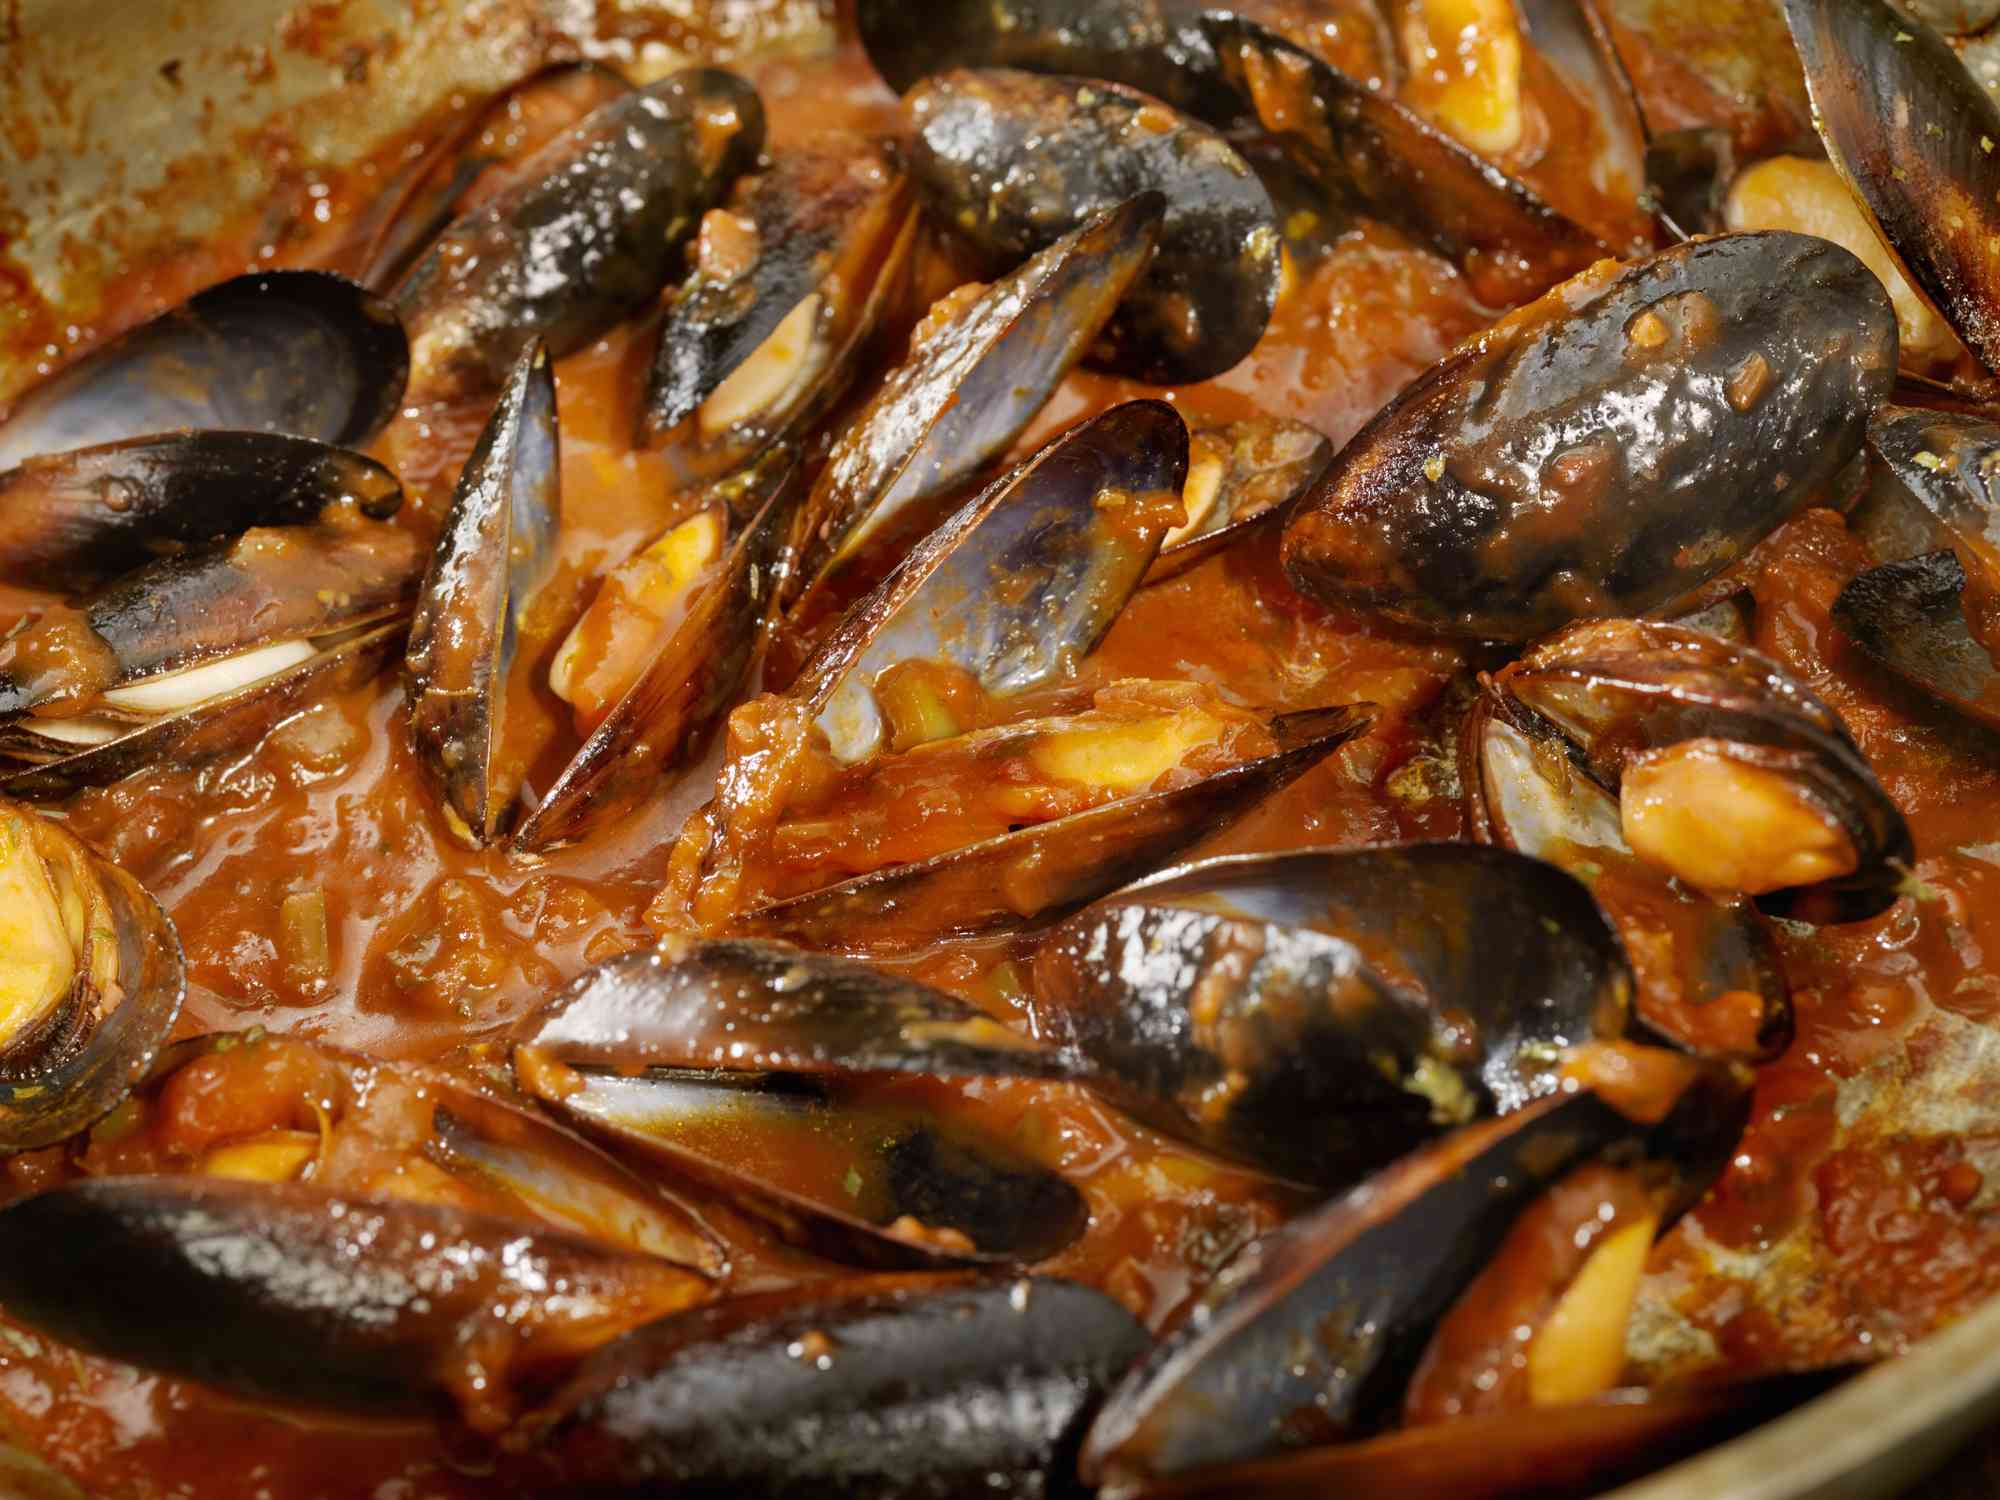 Close-up of a bowl of mussels in tomato sauce